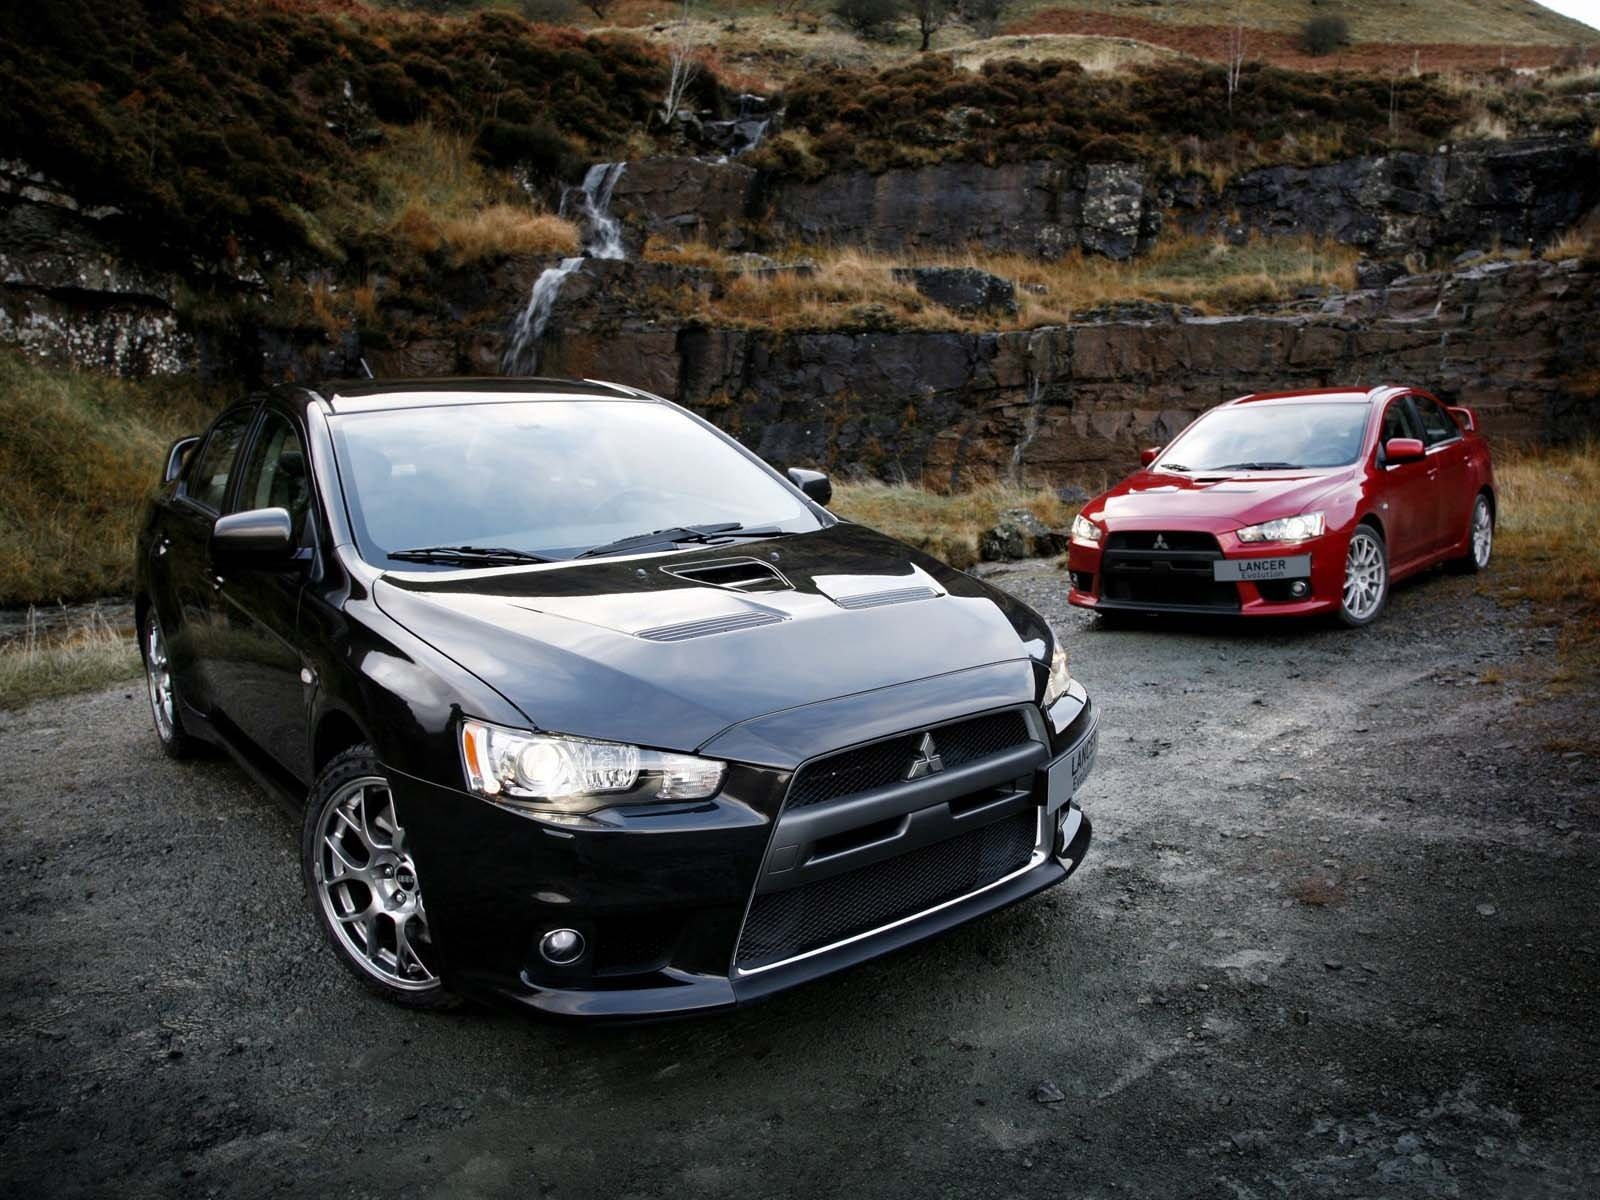 mitsubishi evo 2014 black. mitsubishi lancer evolution x 2008 black and red1600x1200 evo 2014